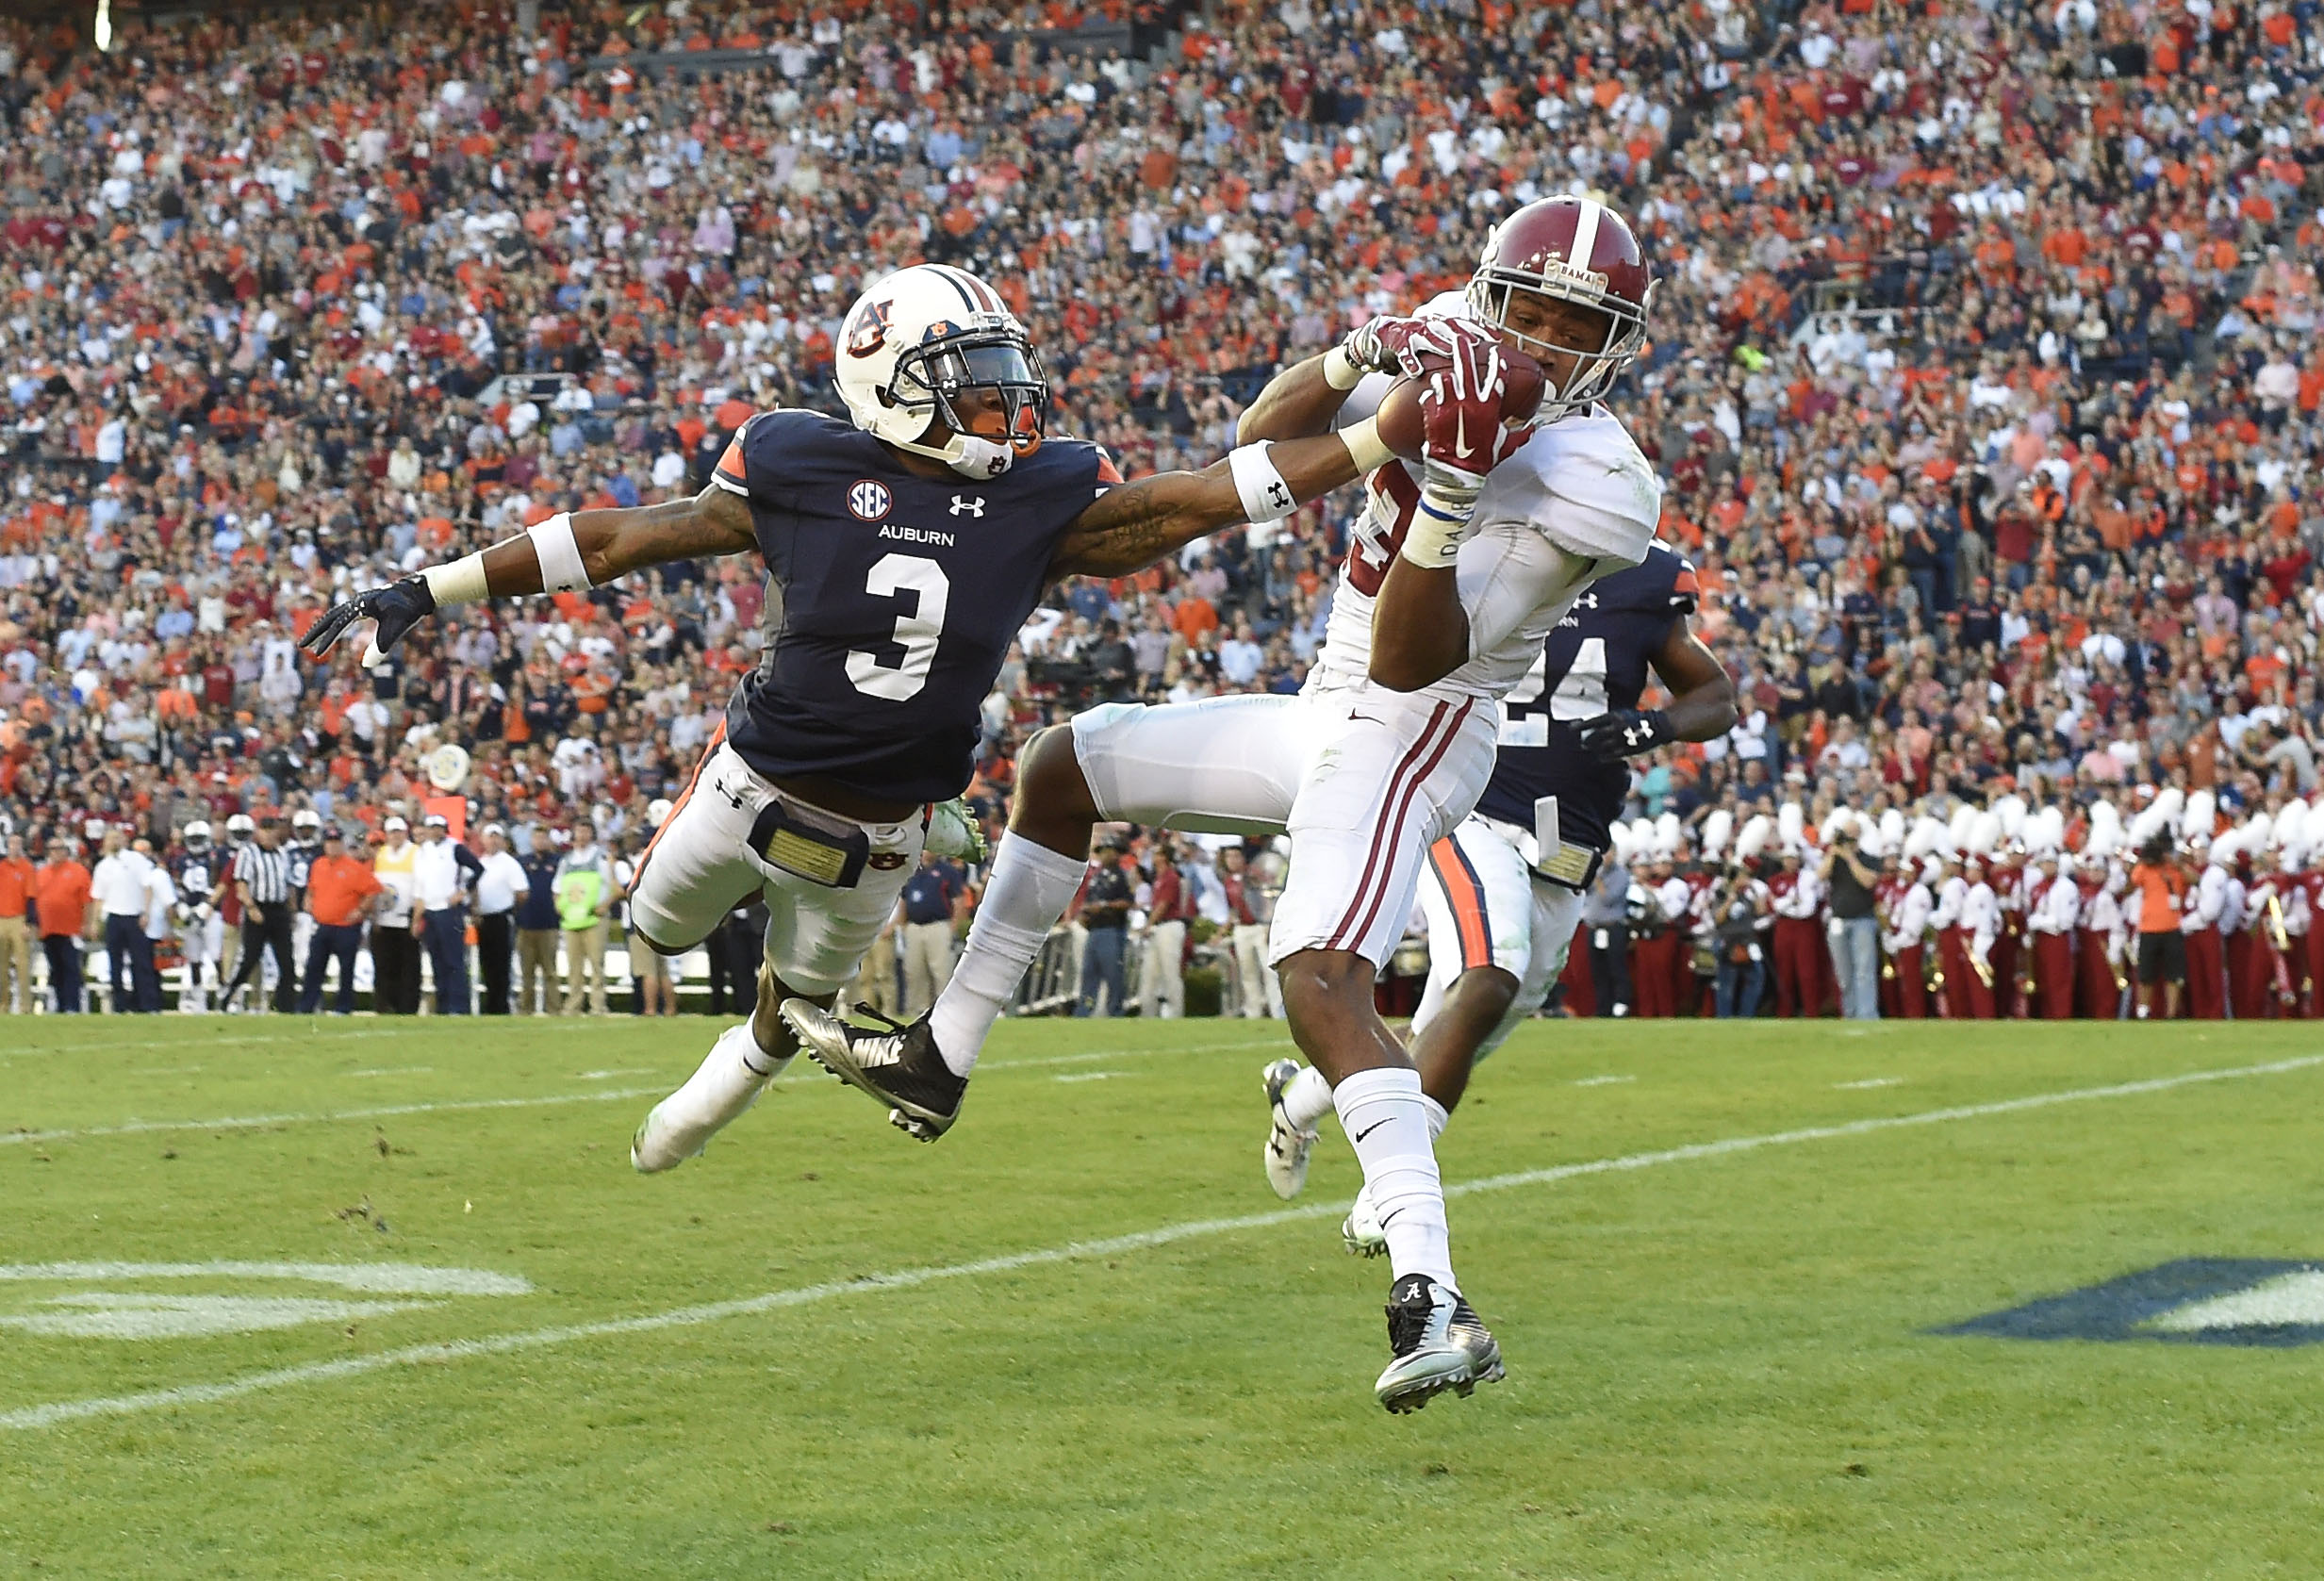 Alabama Football: Is Auburn really 14.5 points better in 2017?